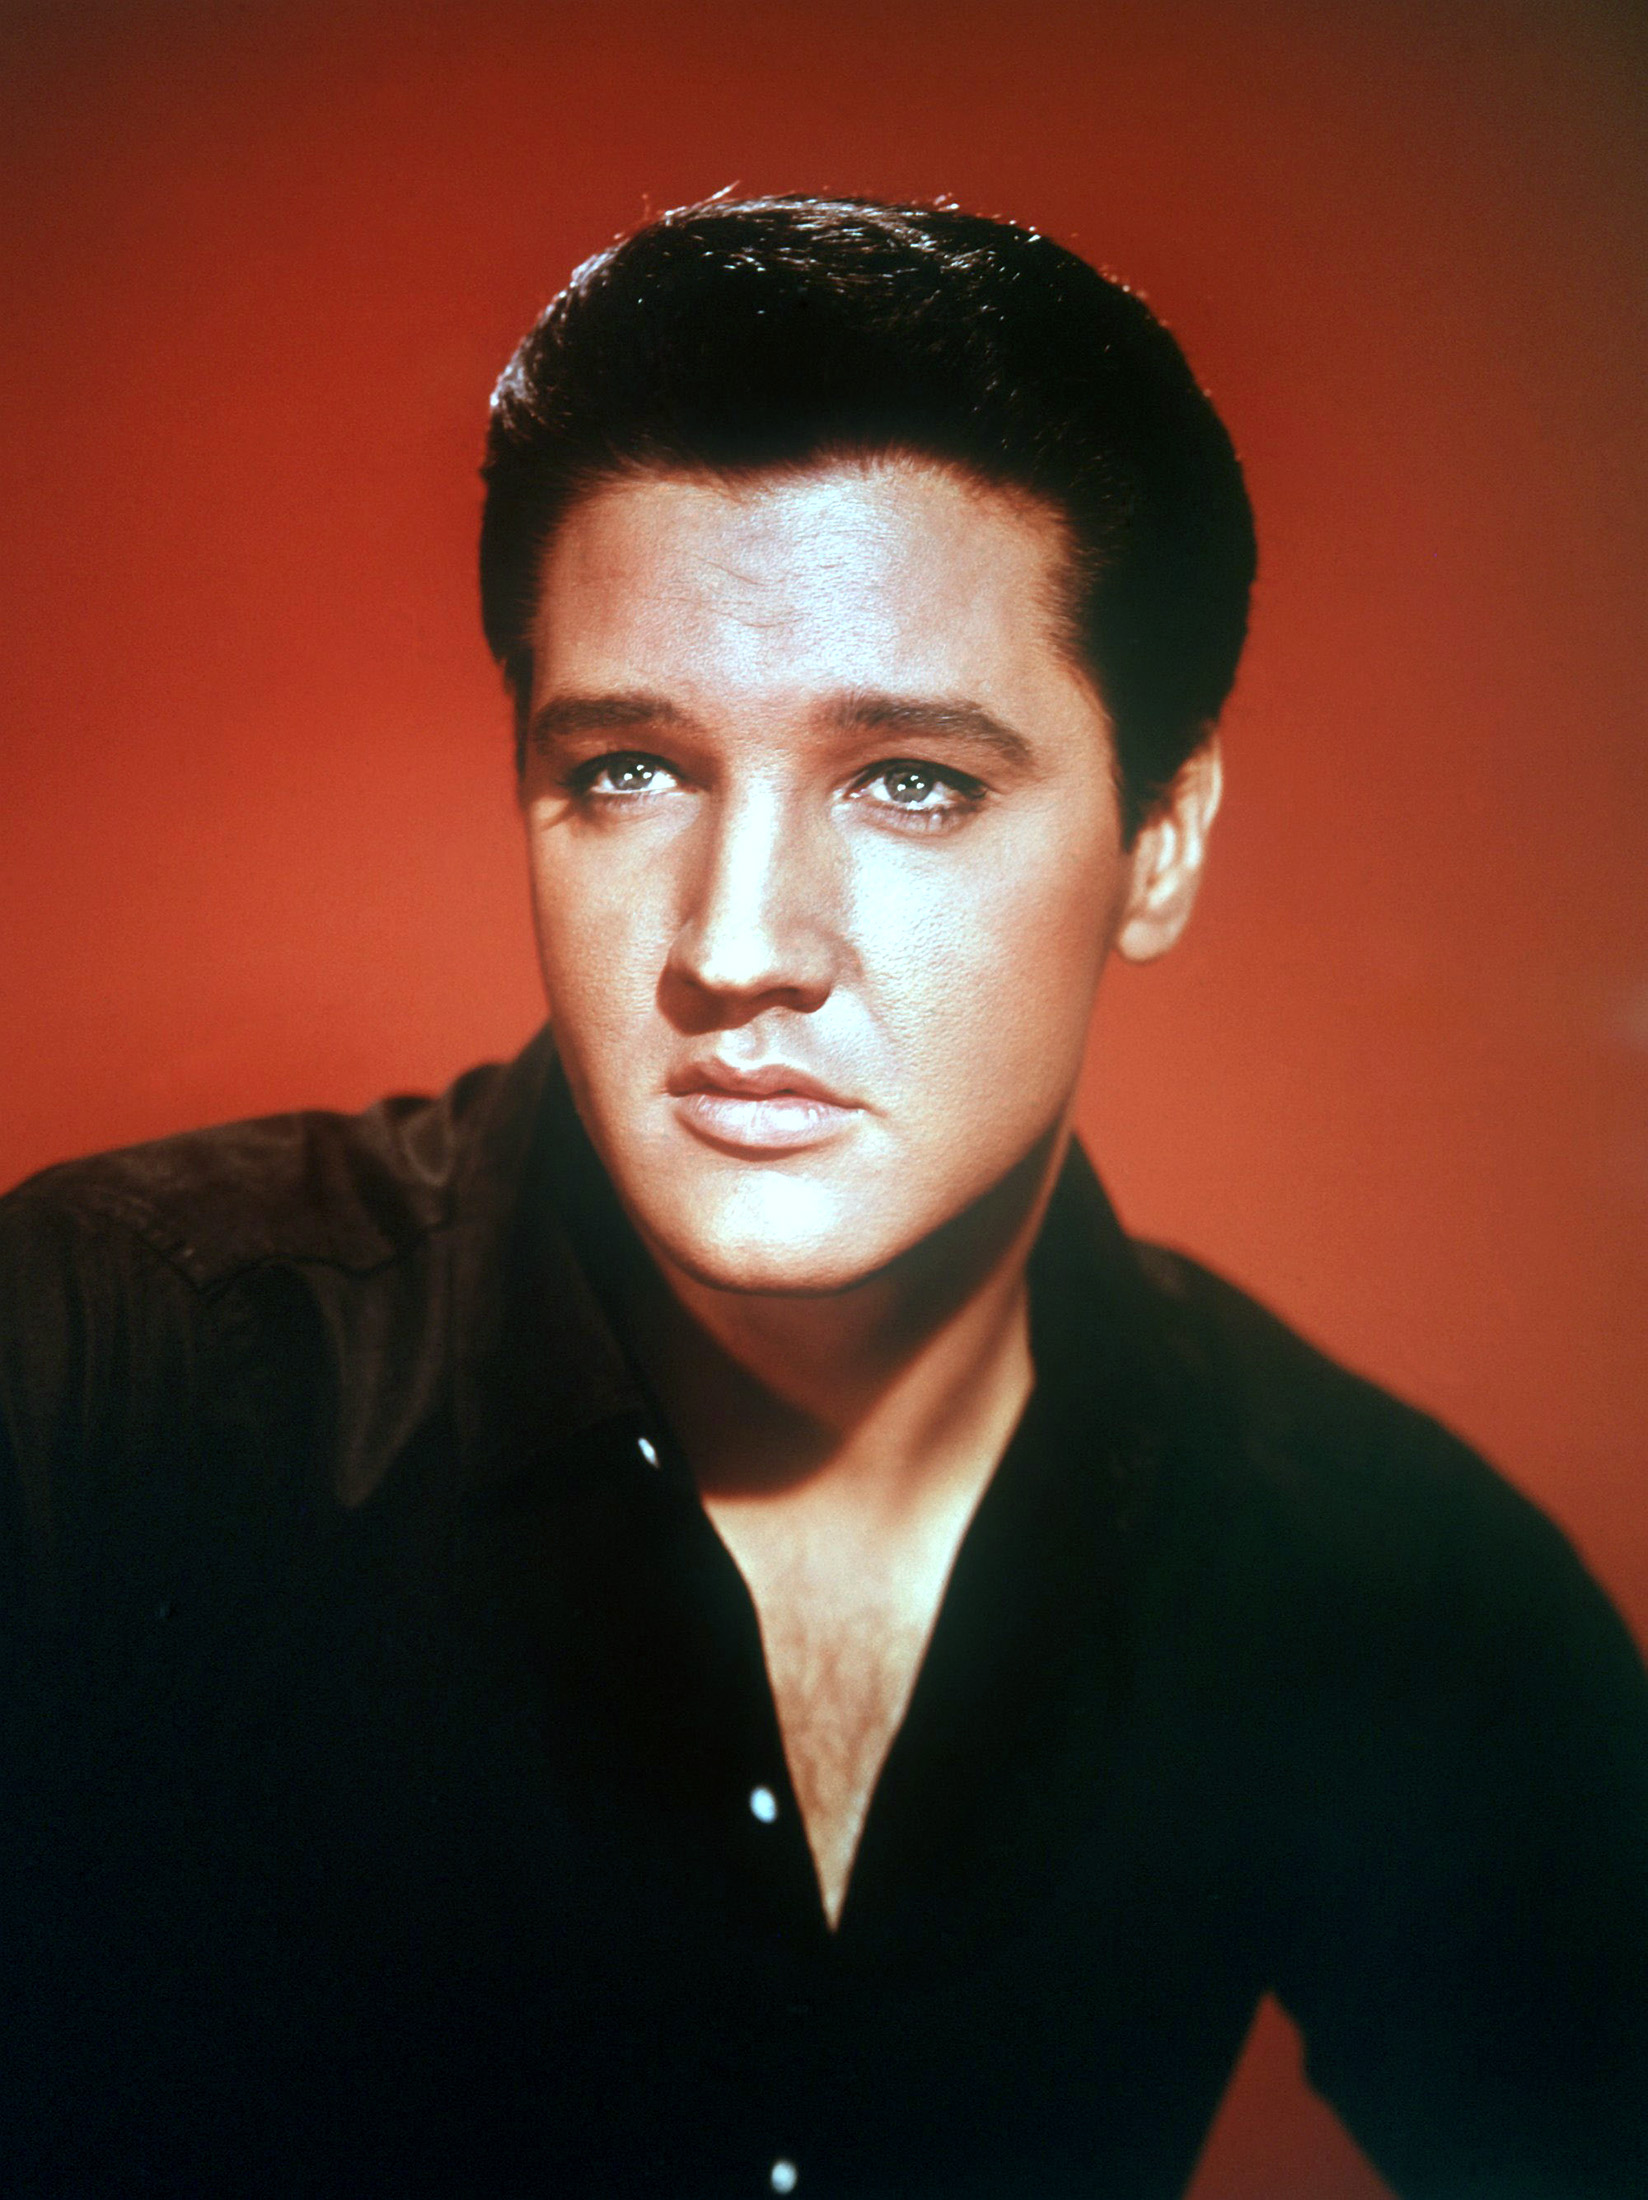 Elvis eye colour